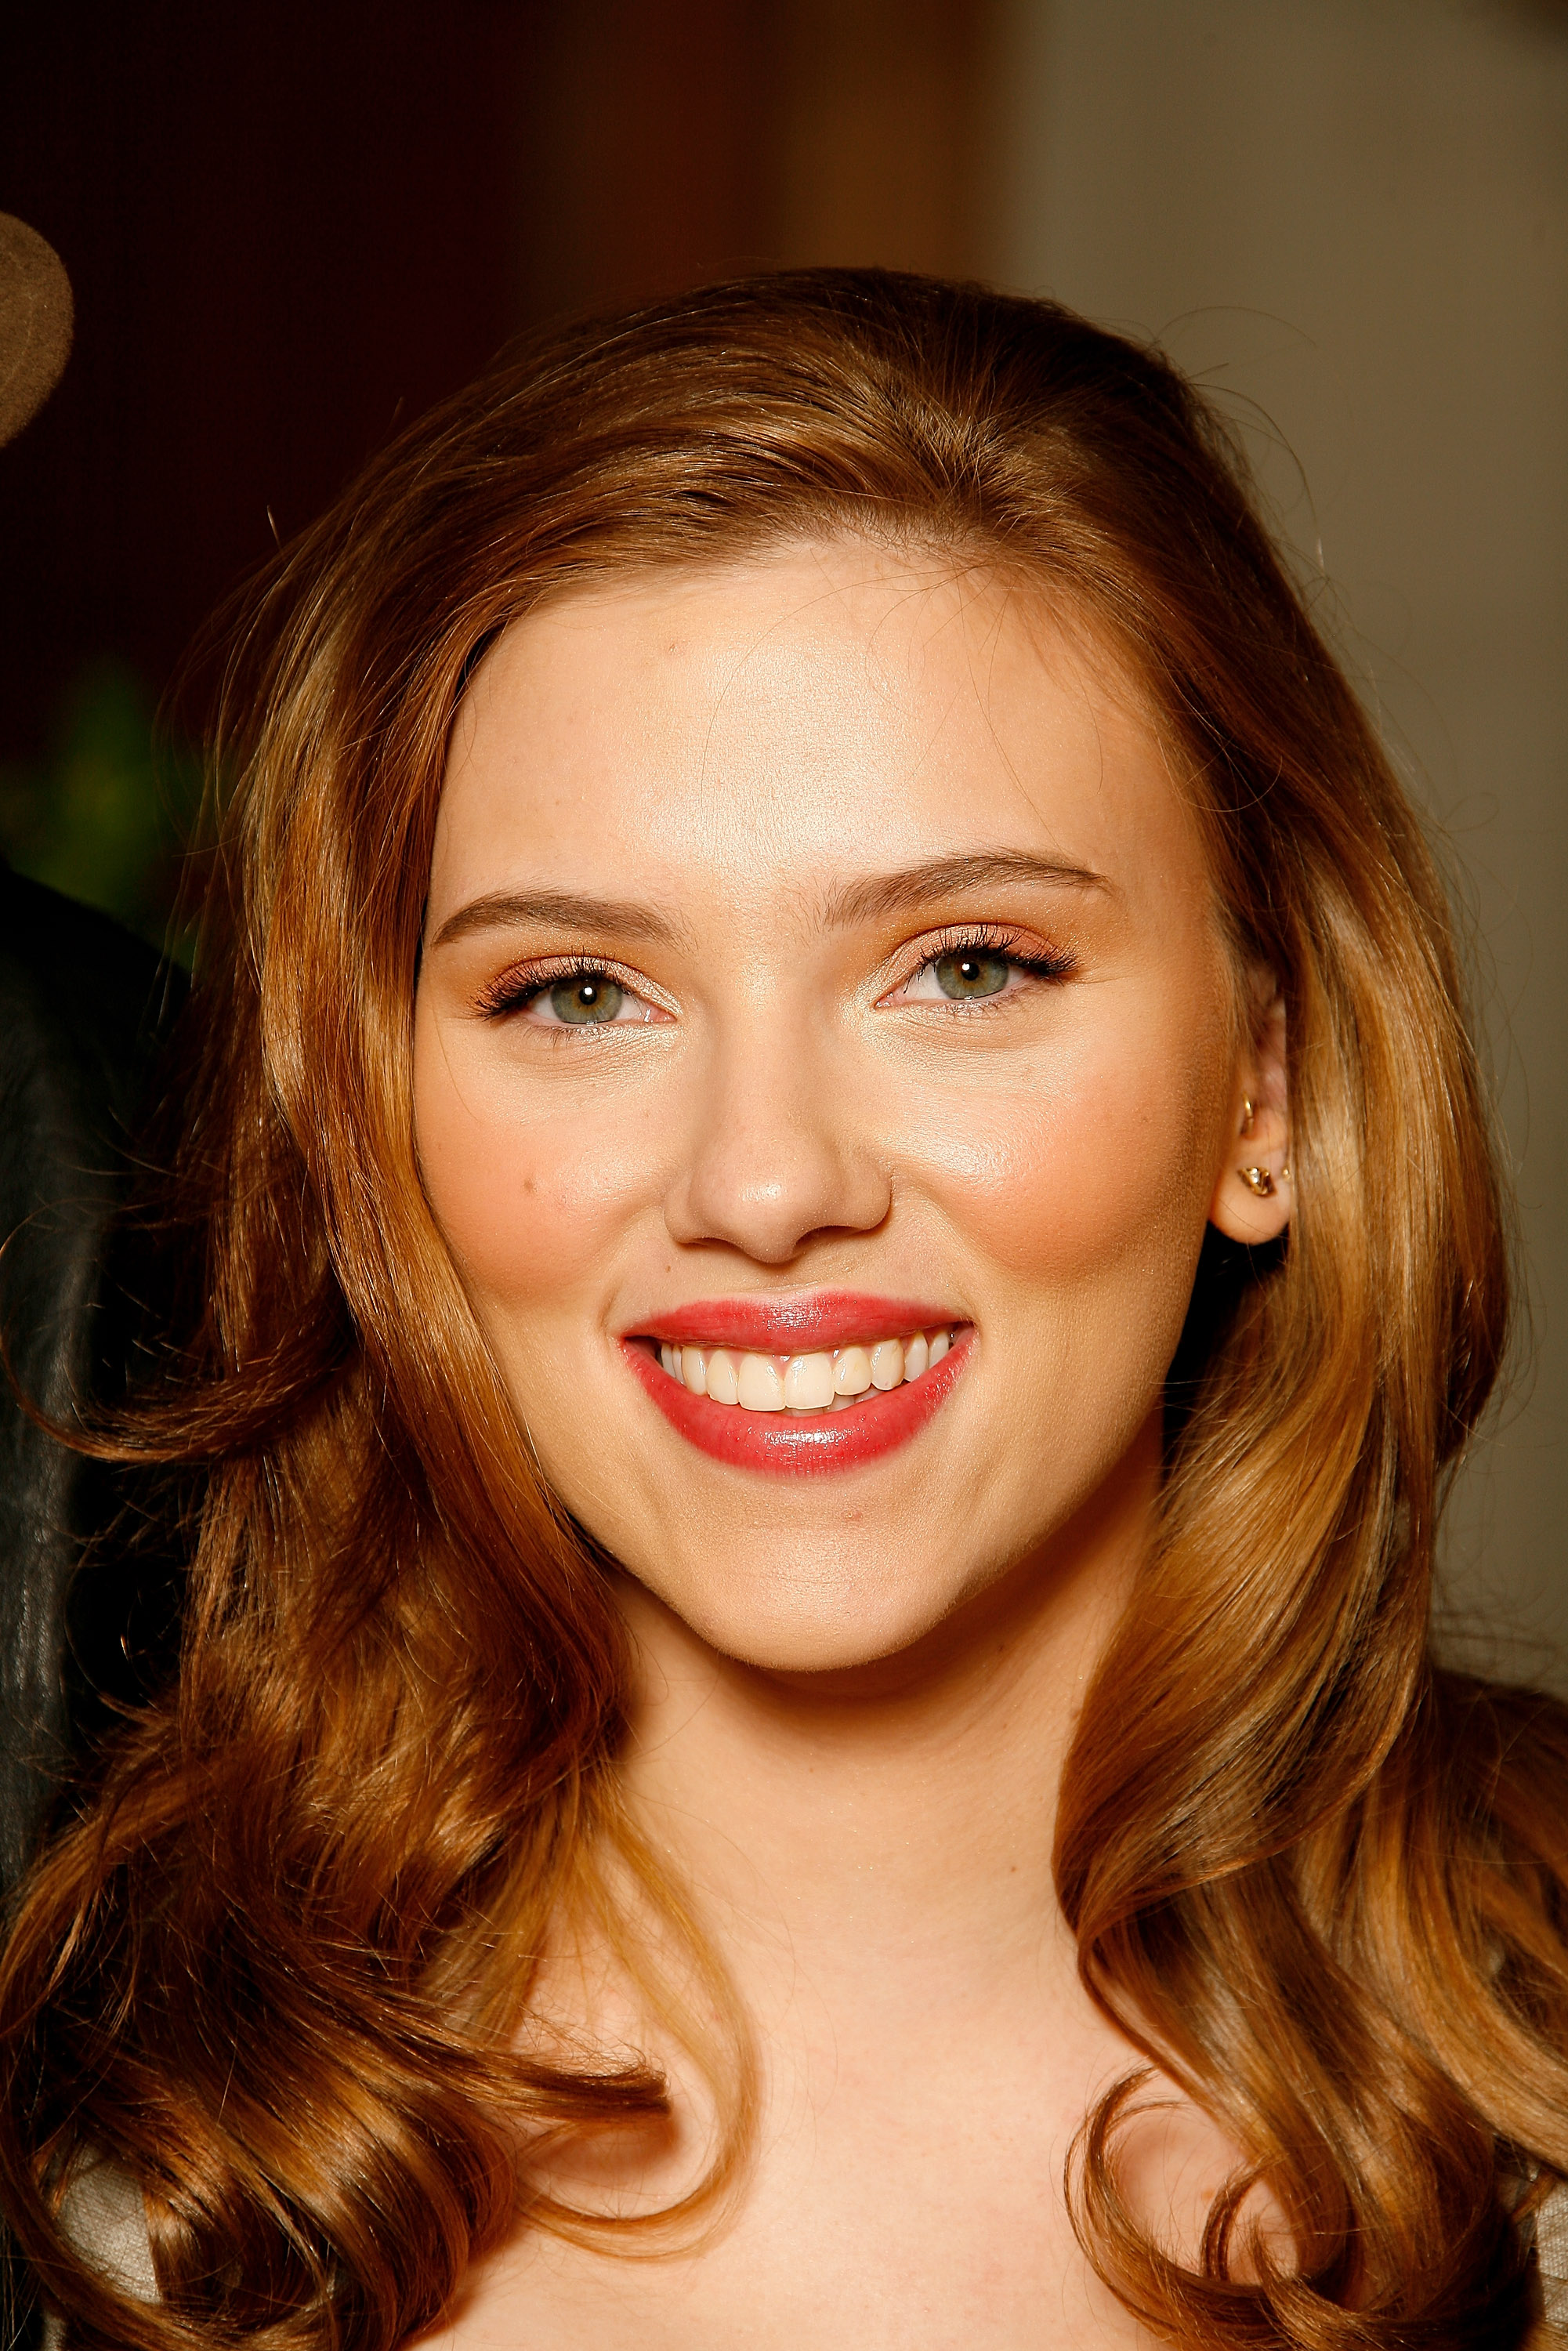 16211_Celebutopia-Scarlett_Johansson-The_Spirit_photocall_in_London-07_122_671lo.jpg